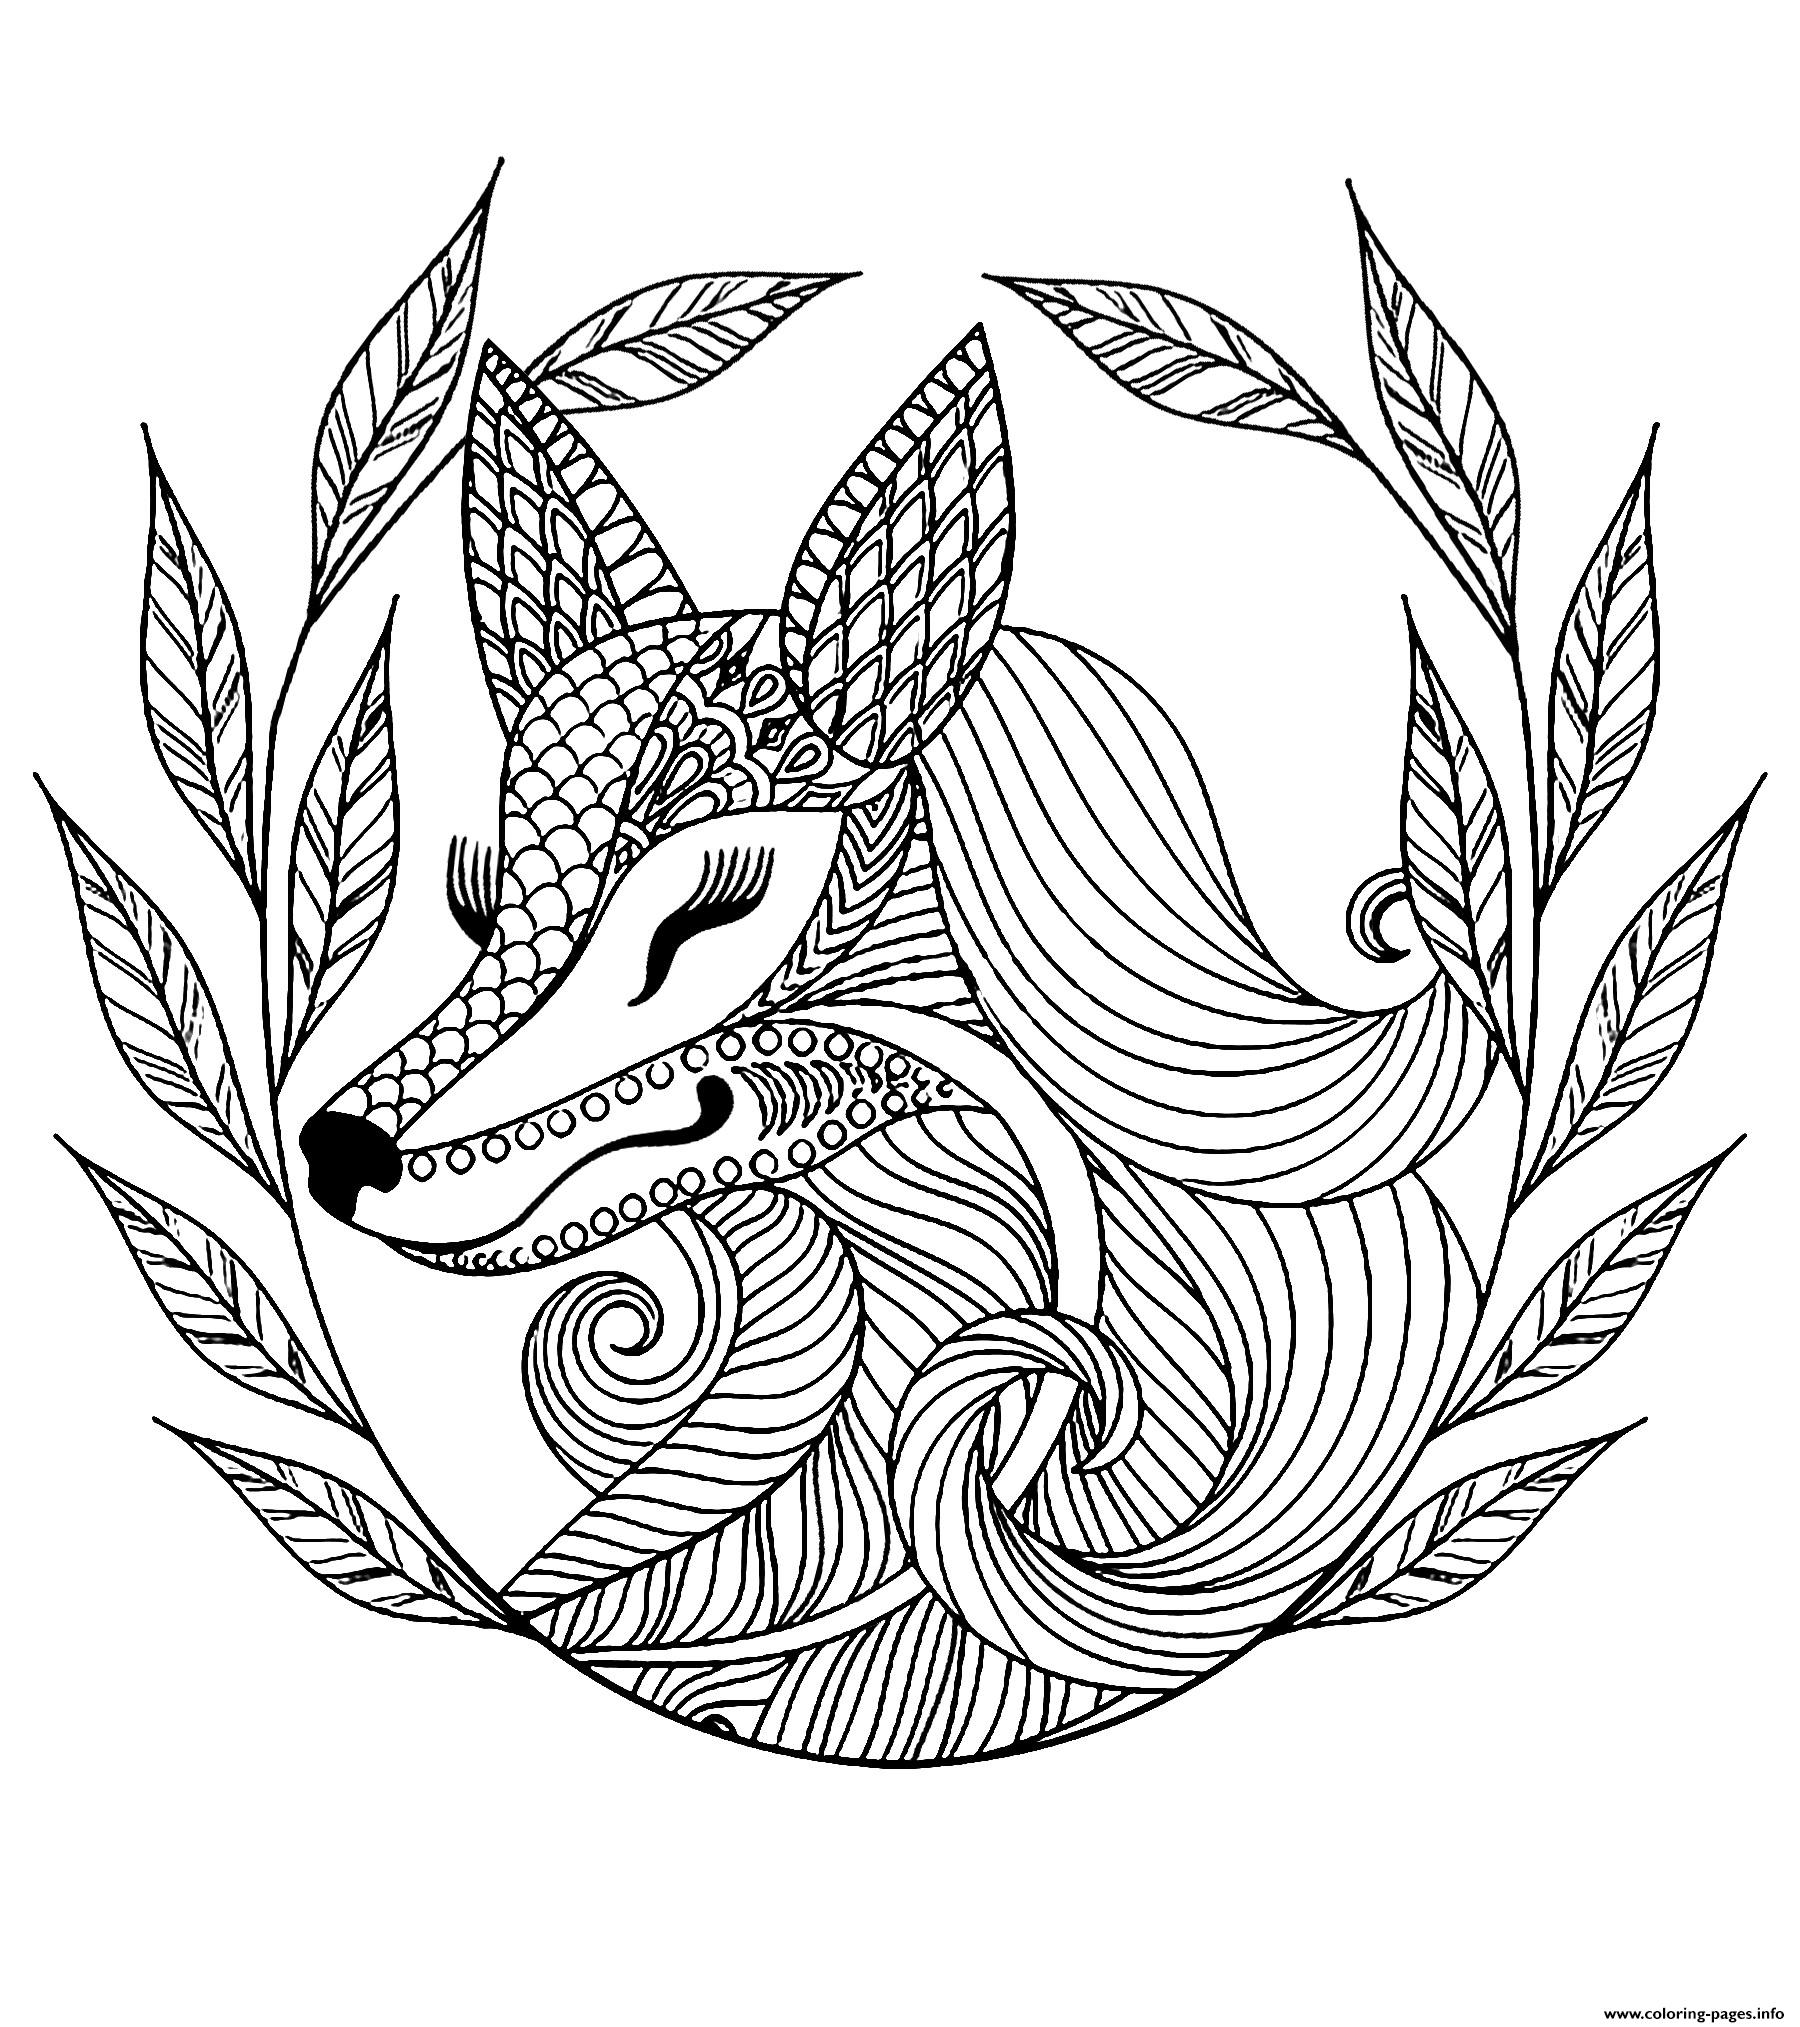 Advanced Fox And Leaves coloring pages